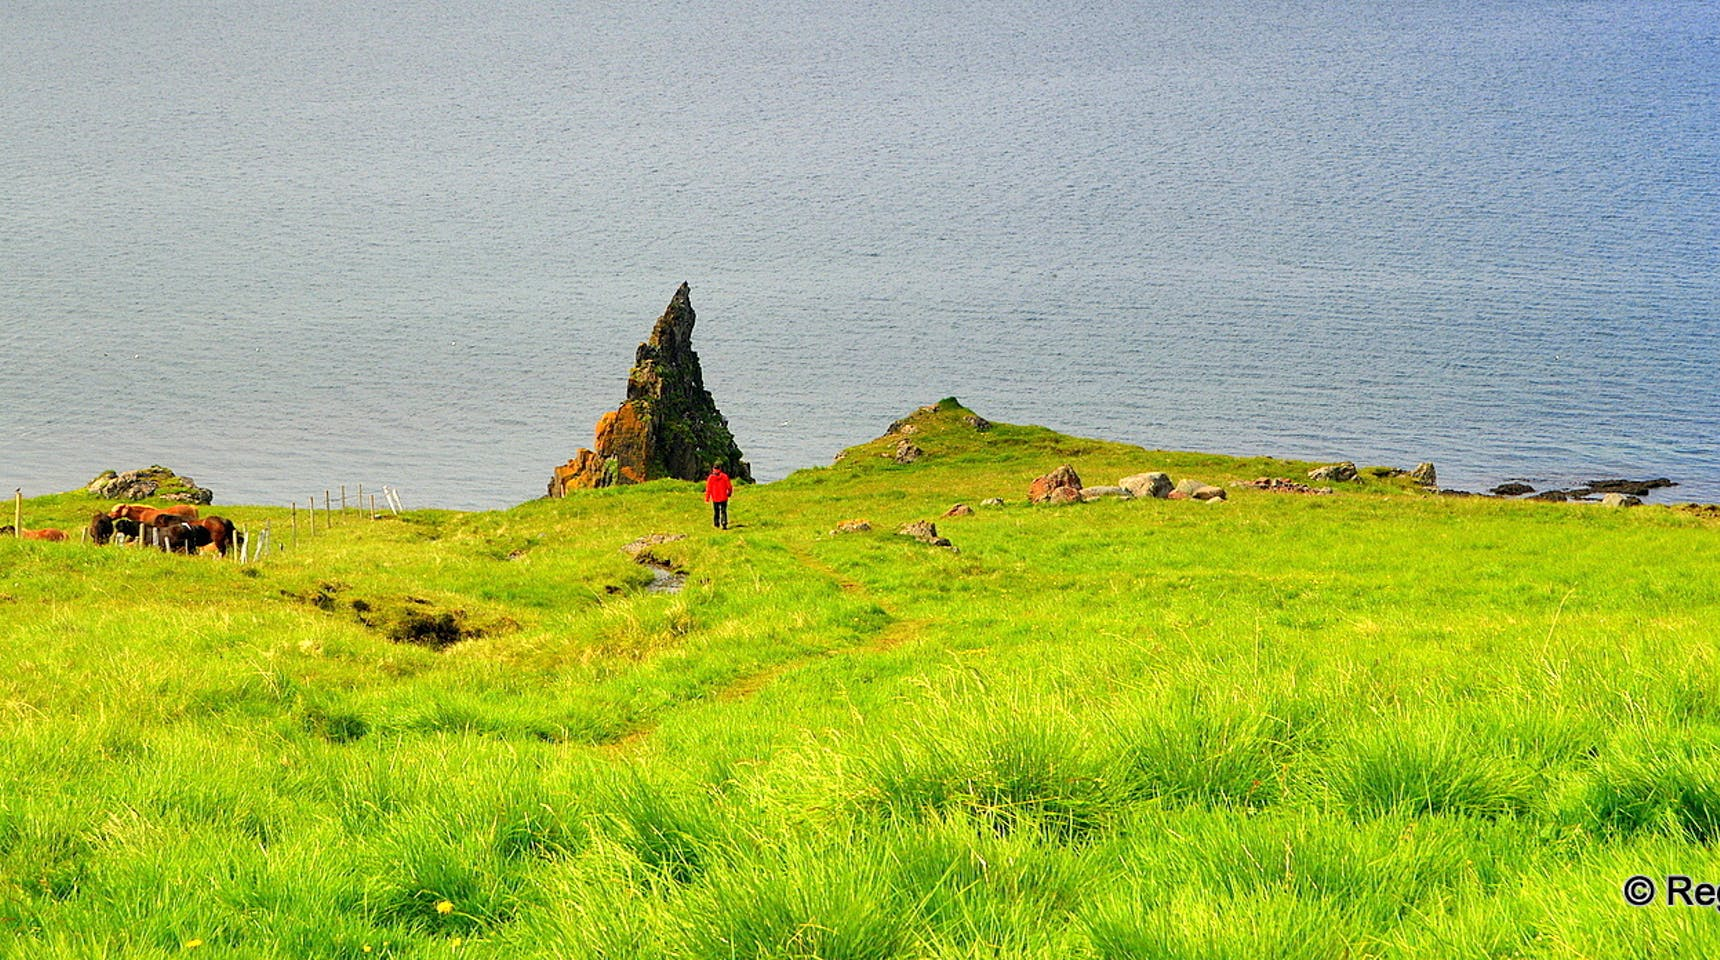 The Majestic Hvitserkur Sea Stack The Troll Of North We